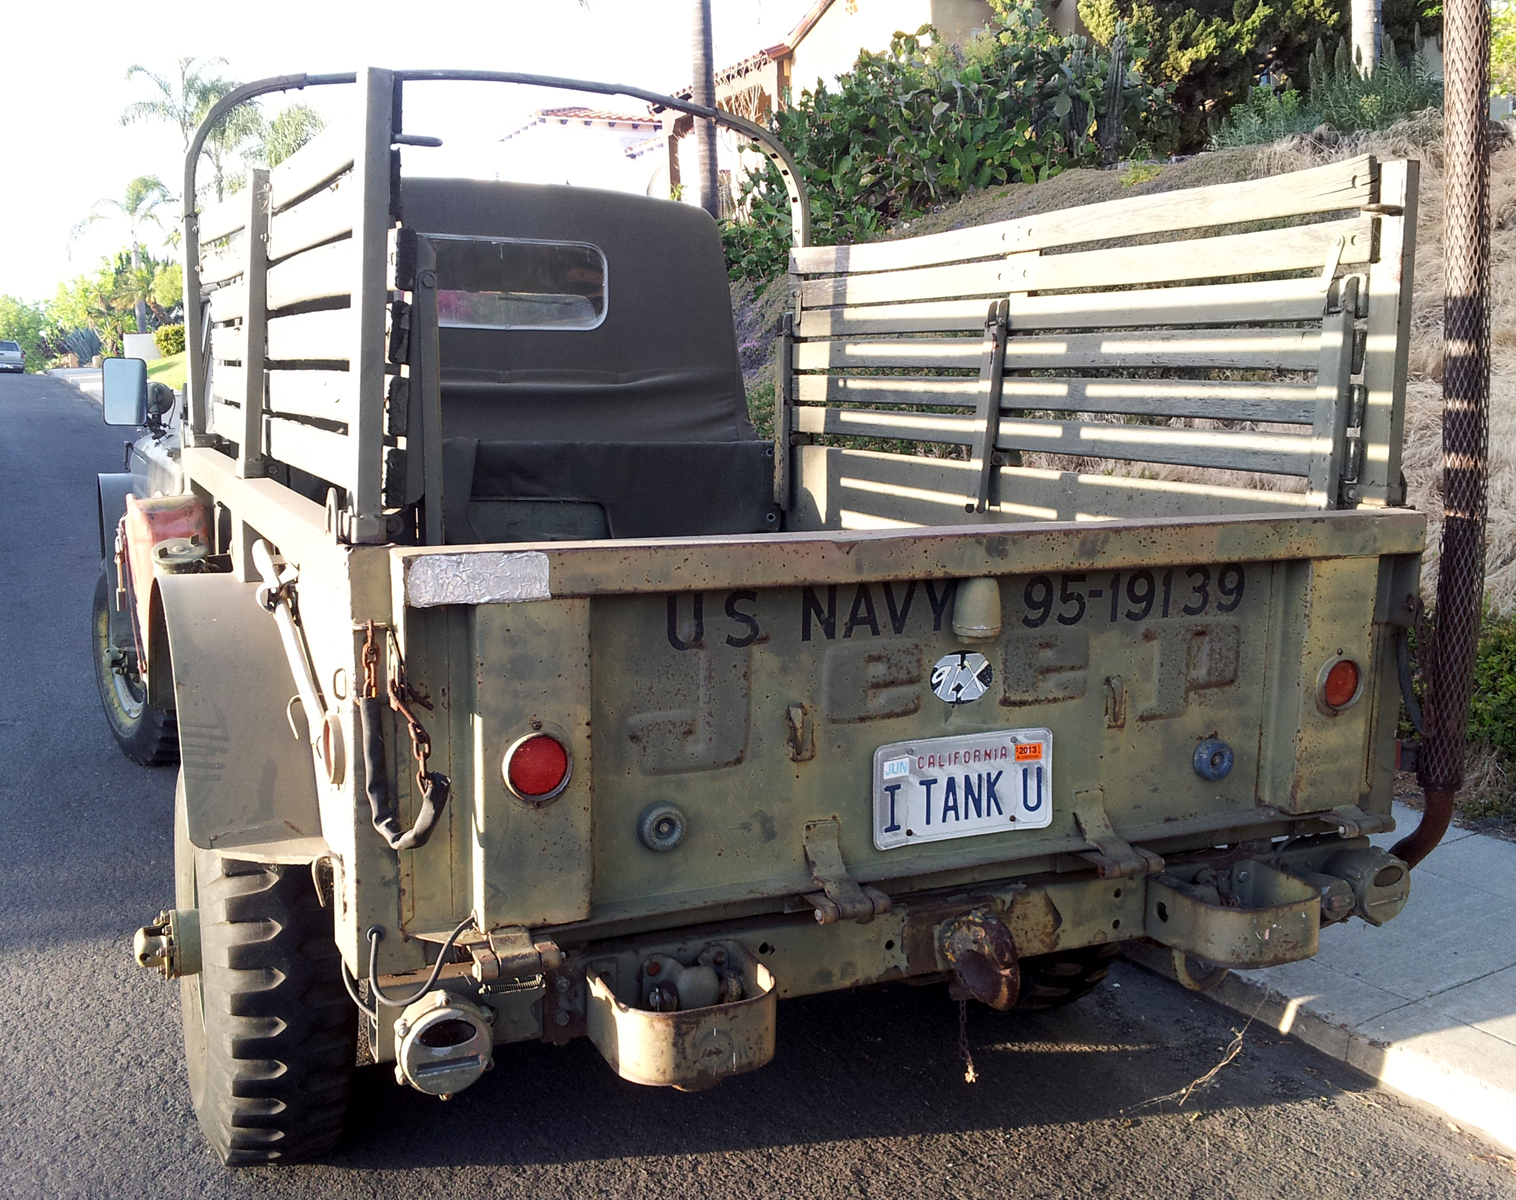 Just A Car Guy: I tank U ... a cool old military Jeep truck